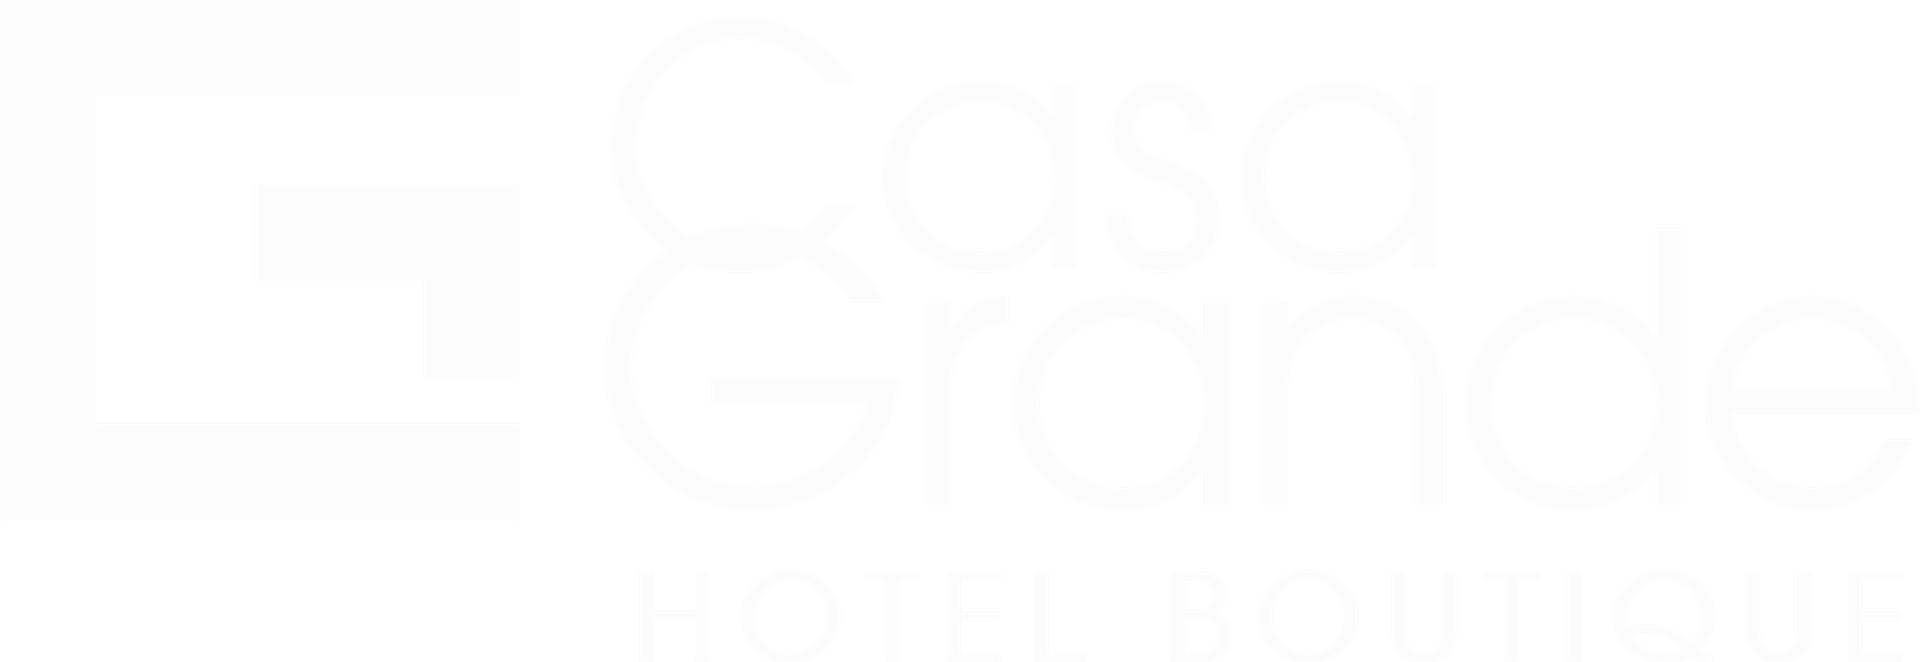 Casagrande Hotel Boutique